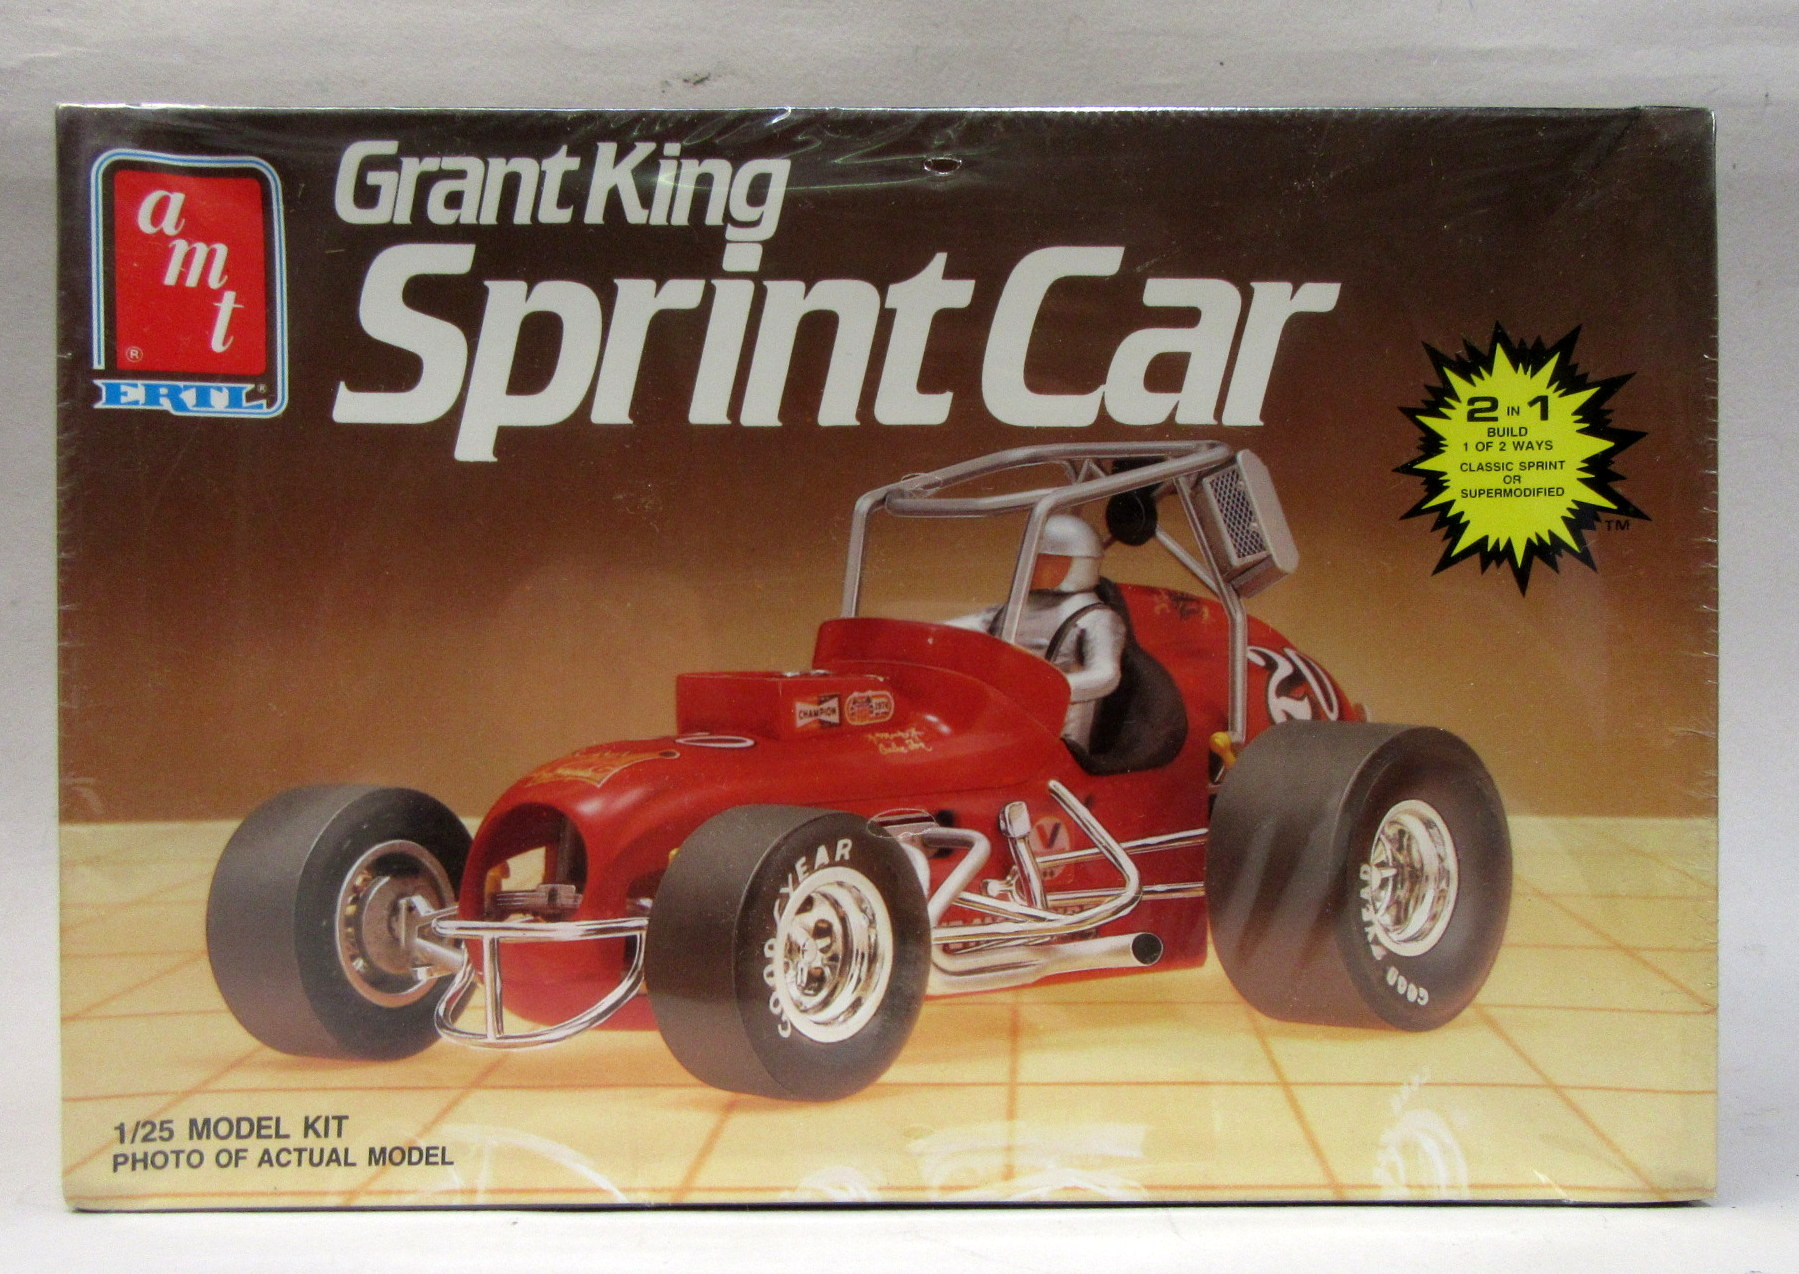 Grant King Race Cars For Sale